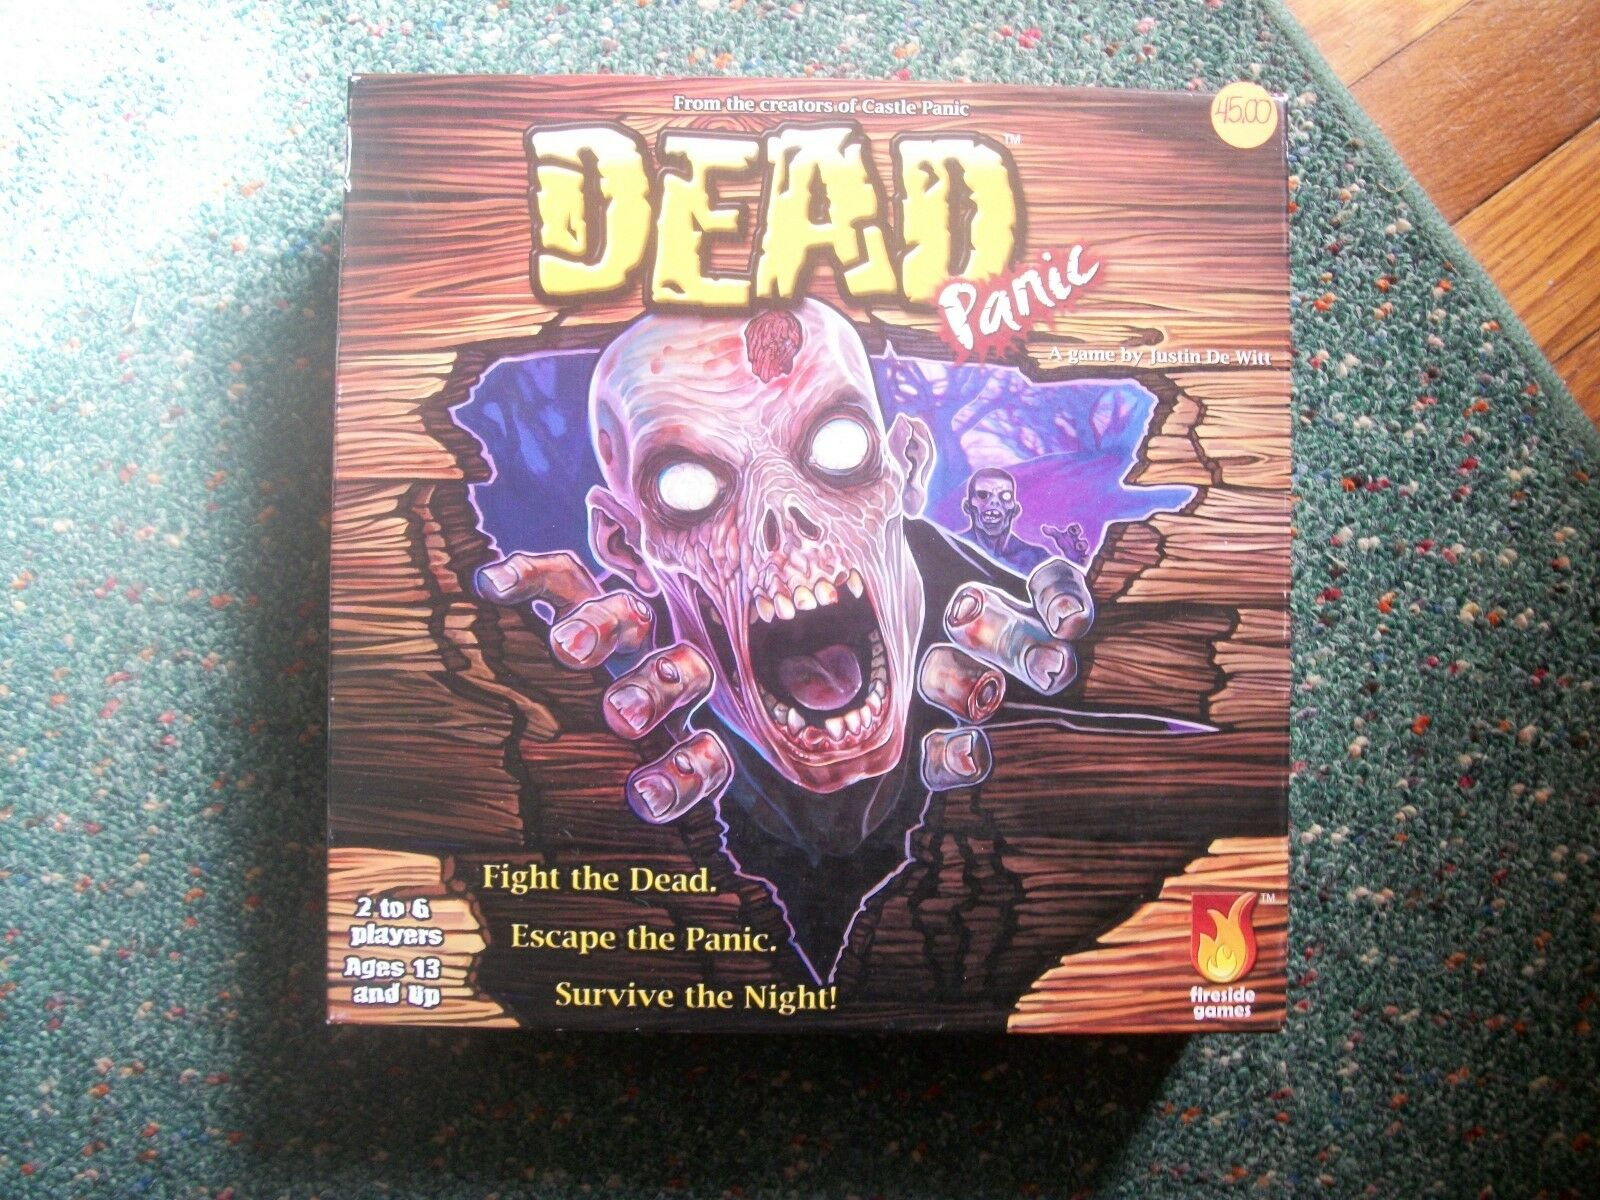 DEAD PANIC-- BOARD GAME BY JUSTIN DE WITT